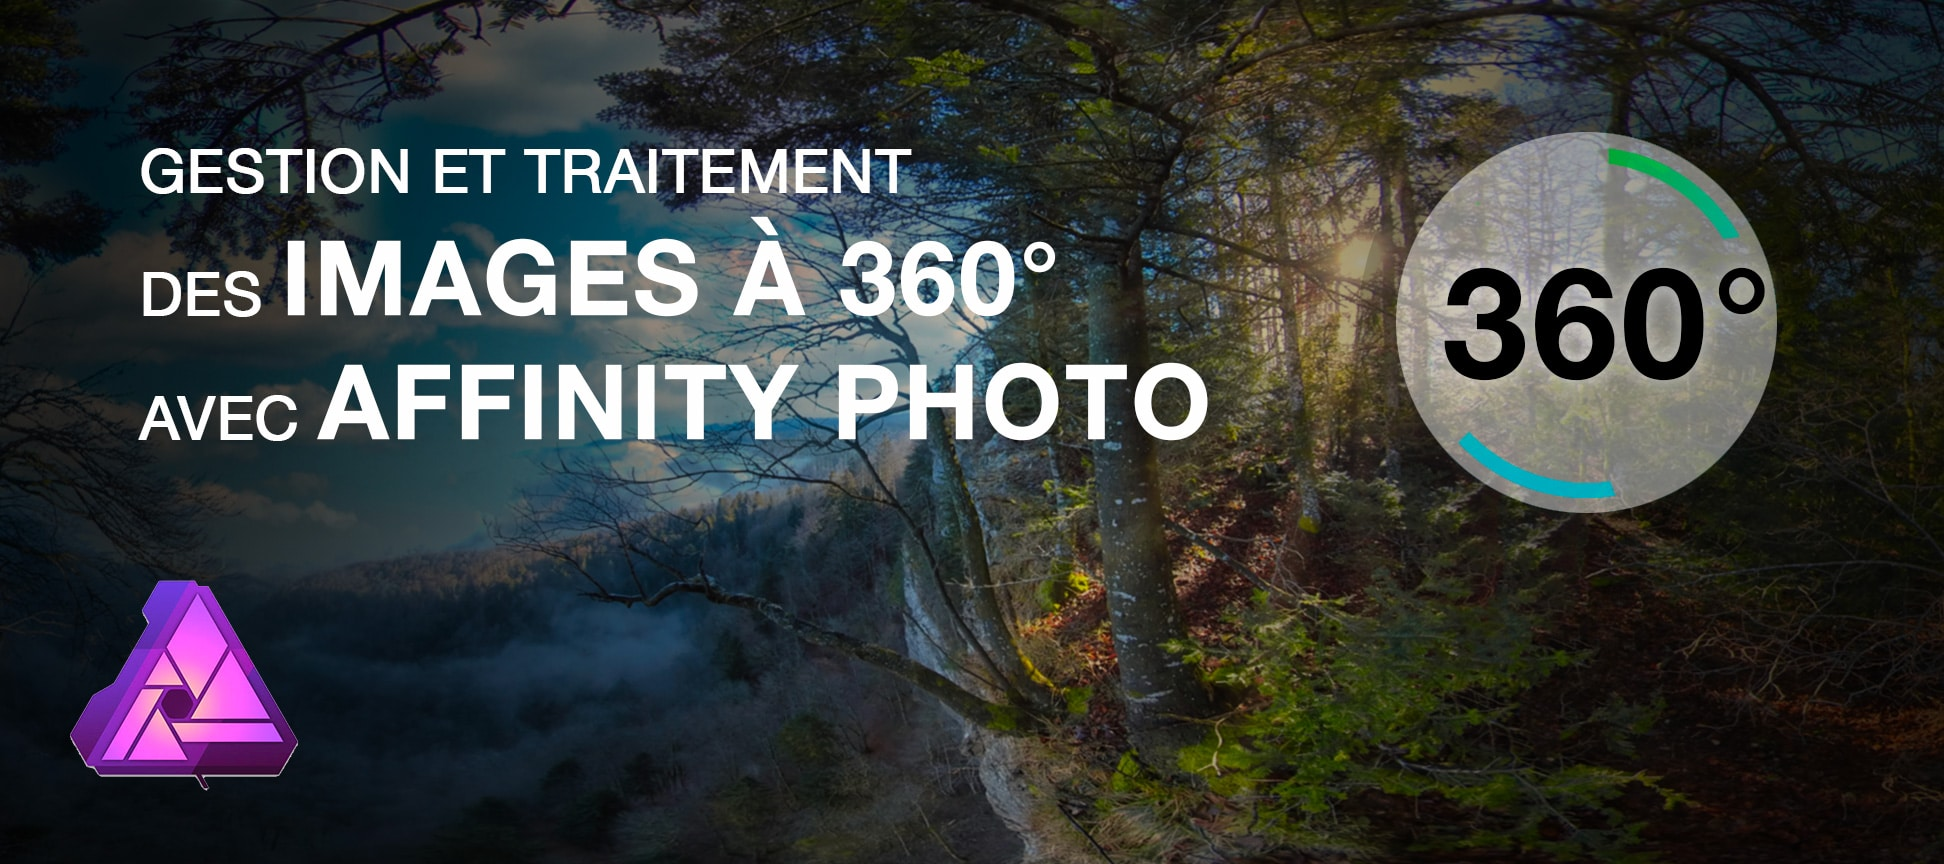 gestion traitement images 360 affinity photo